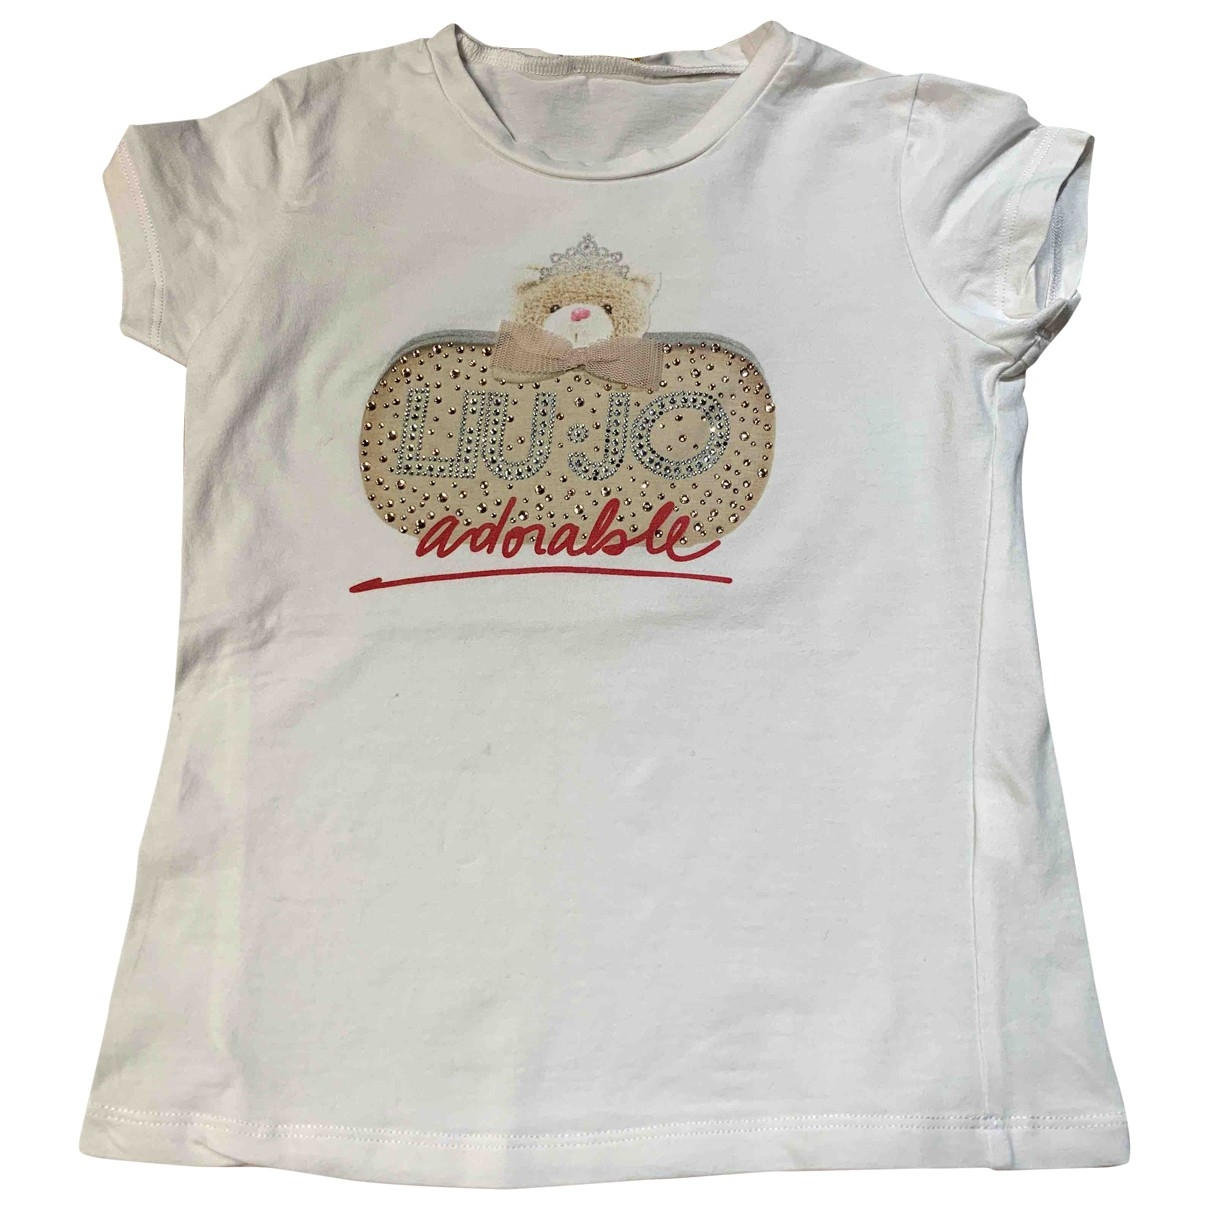 Liu.jo \N White Cotton  top for Kids 4 years - up to 102cm FR